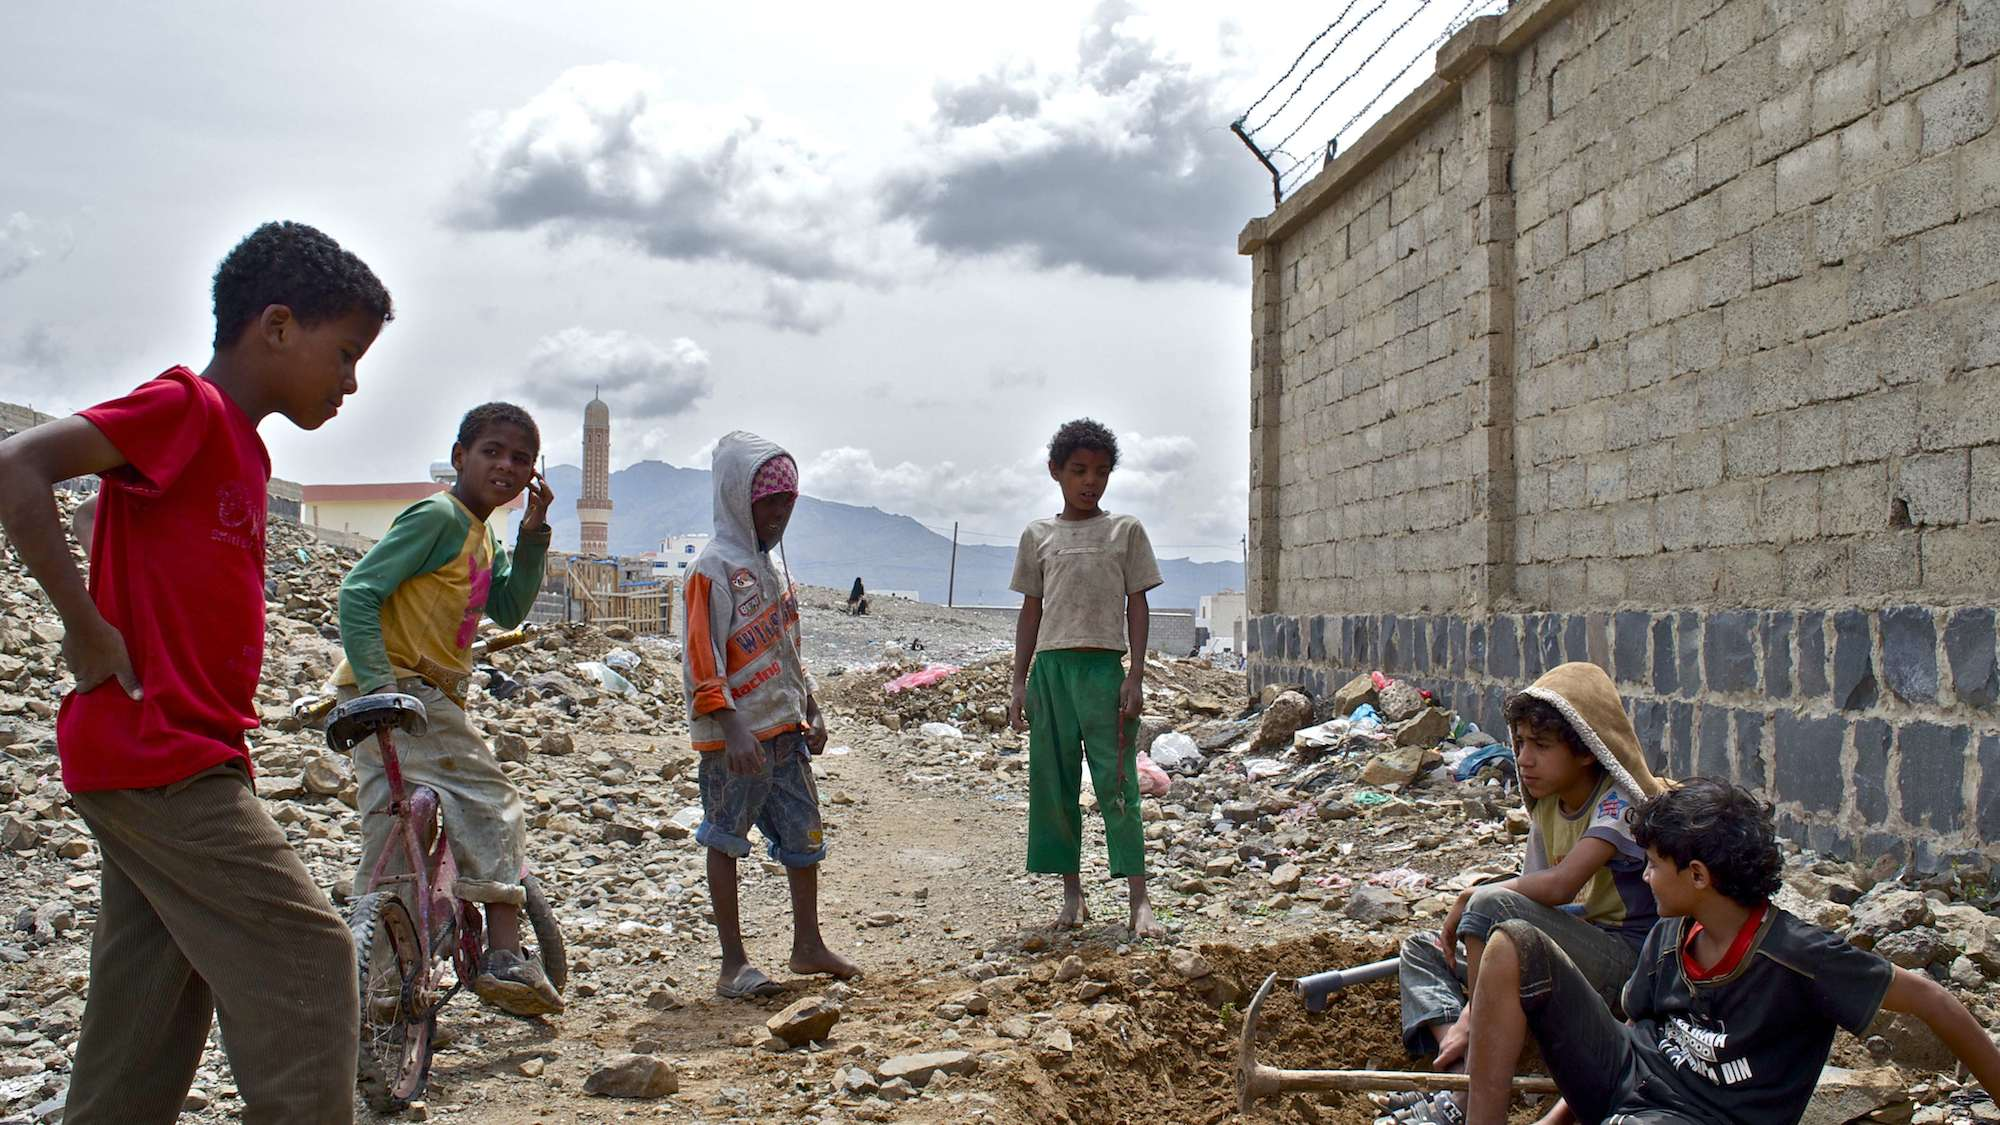 Yemeni children playing near the slum where they live in central Sana'a